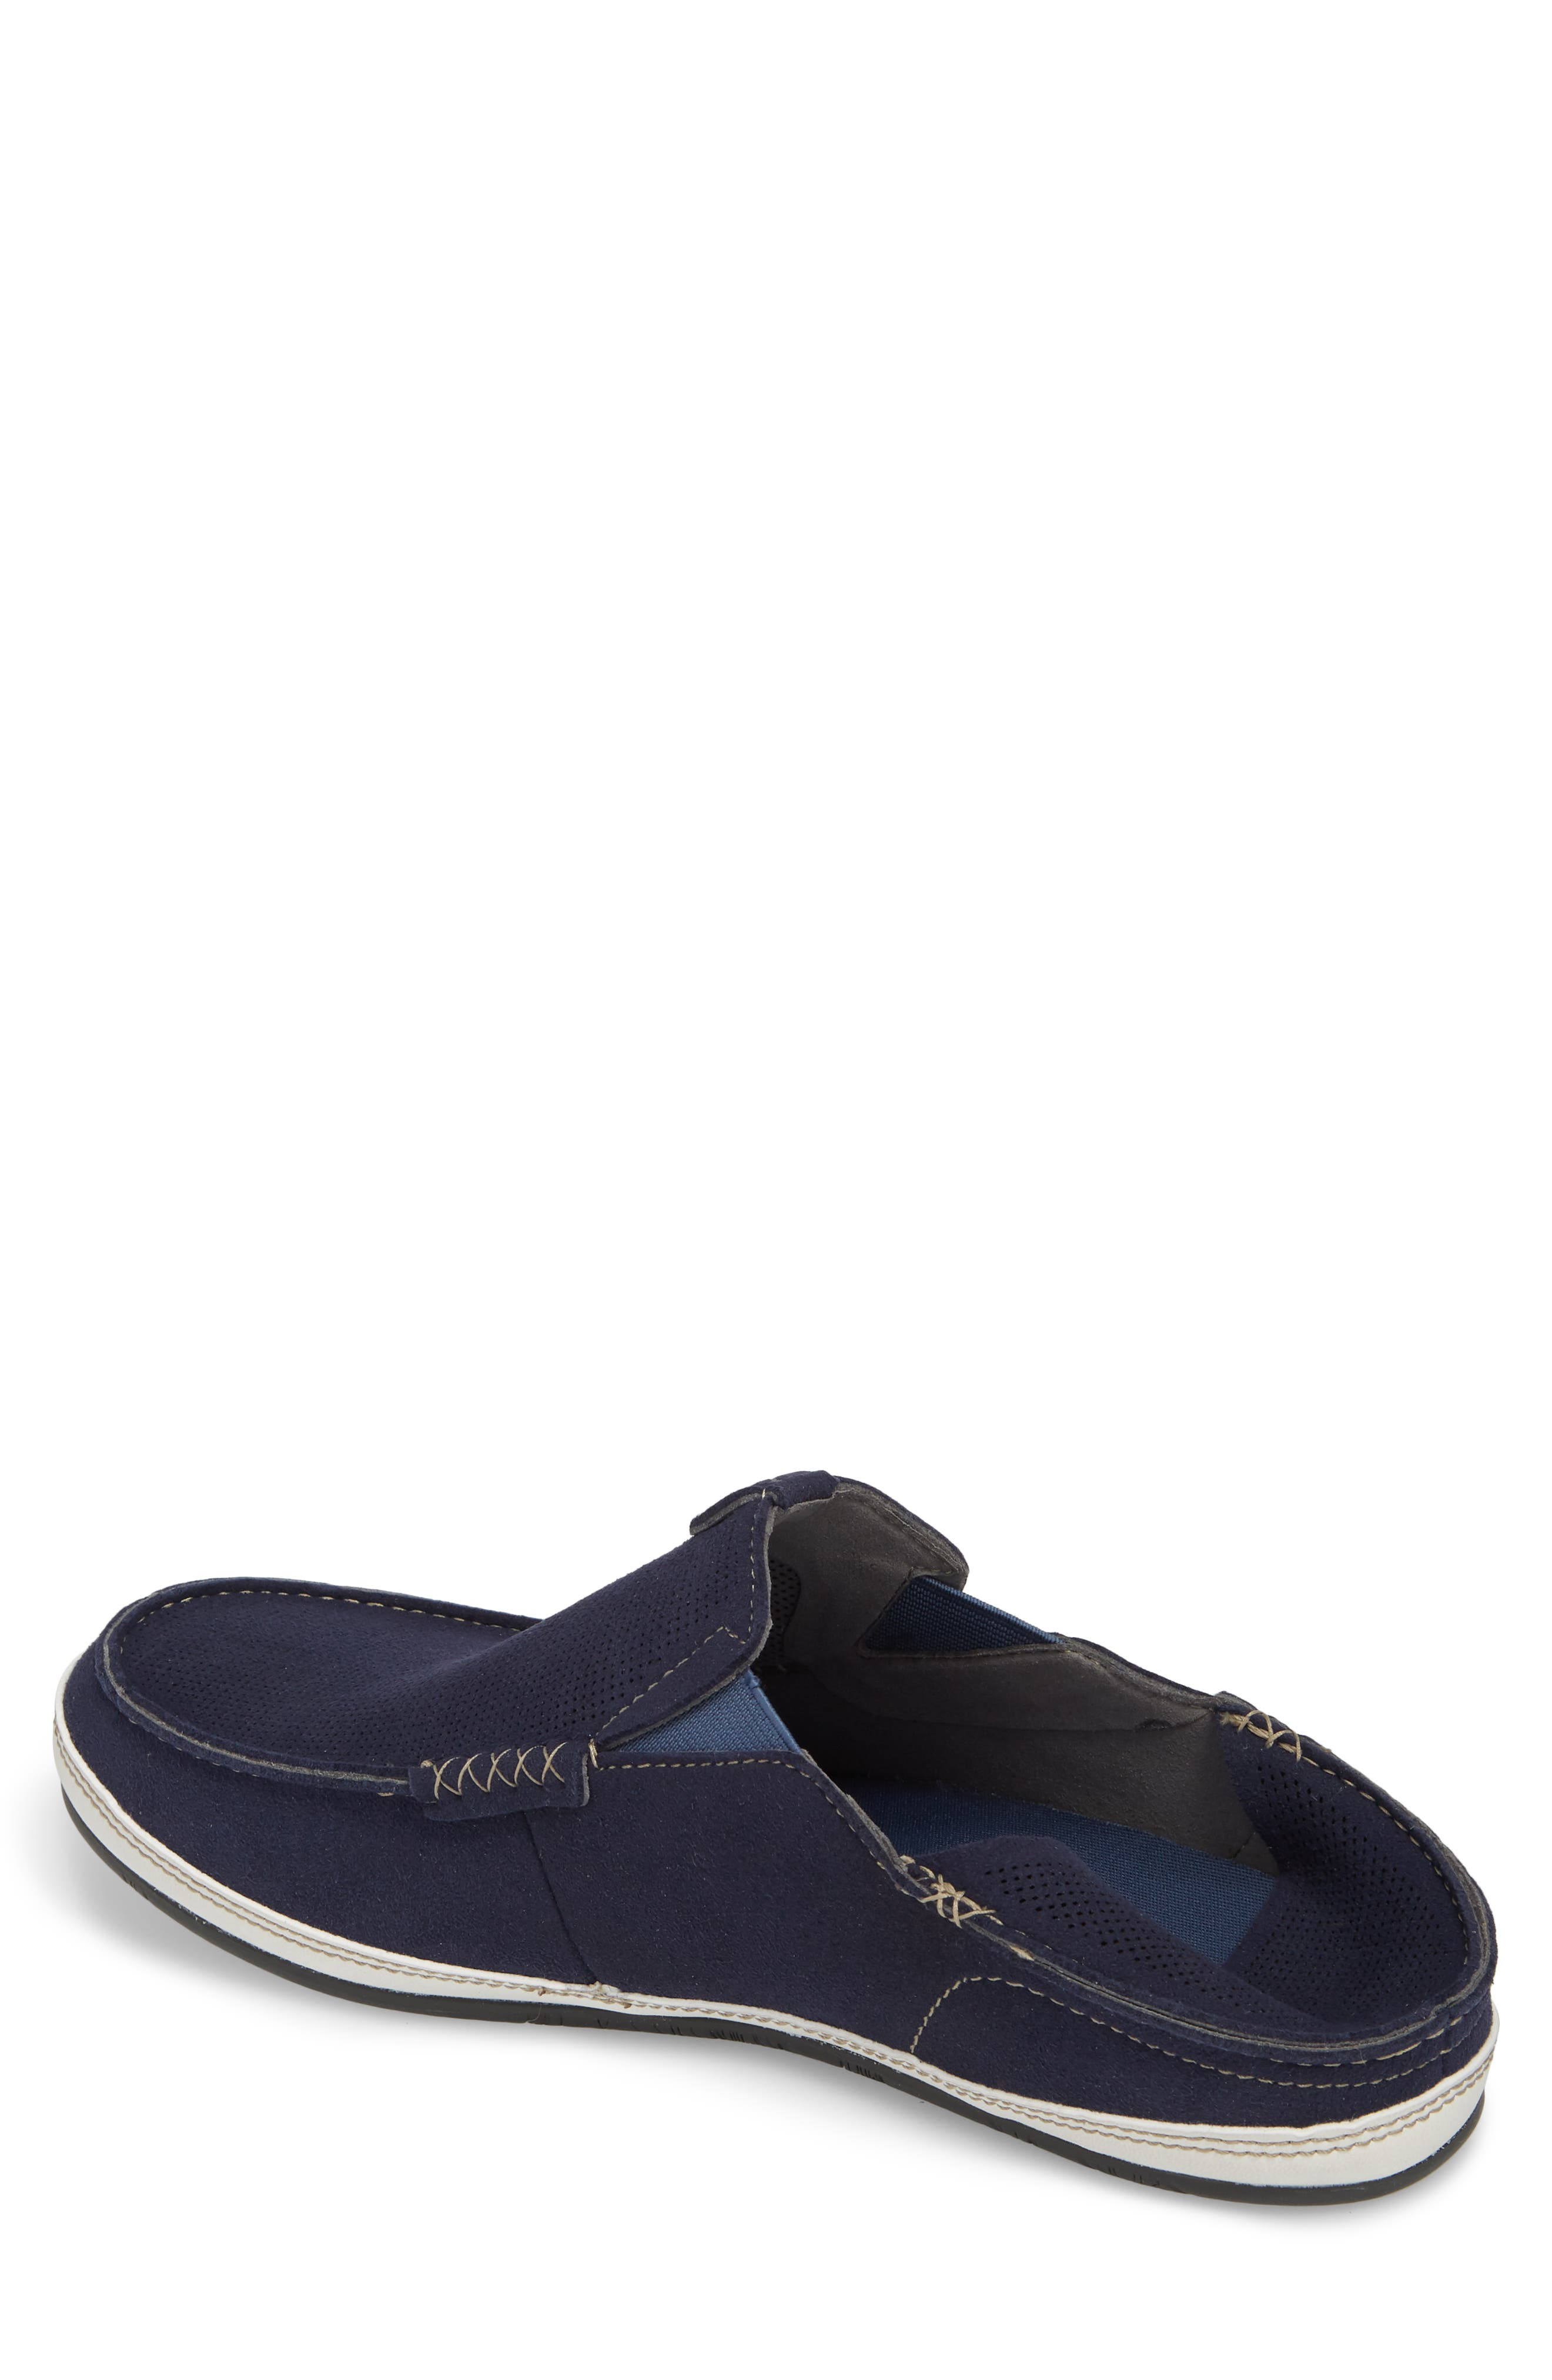 Kauwela Collapsible Slip-On,                             Alternate thumbnail 3, color,                             TRENCH BLUE/ OFF WHITE